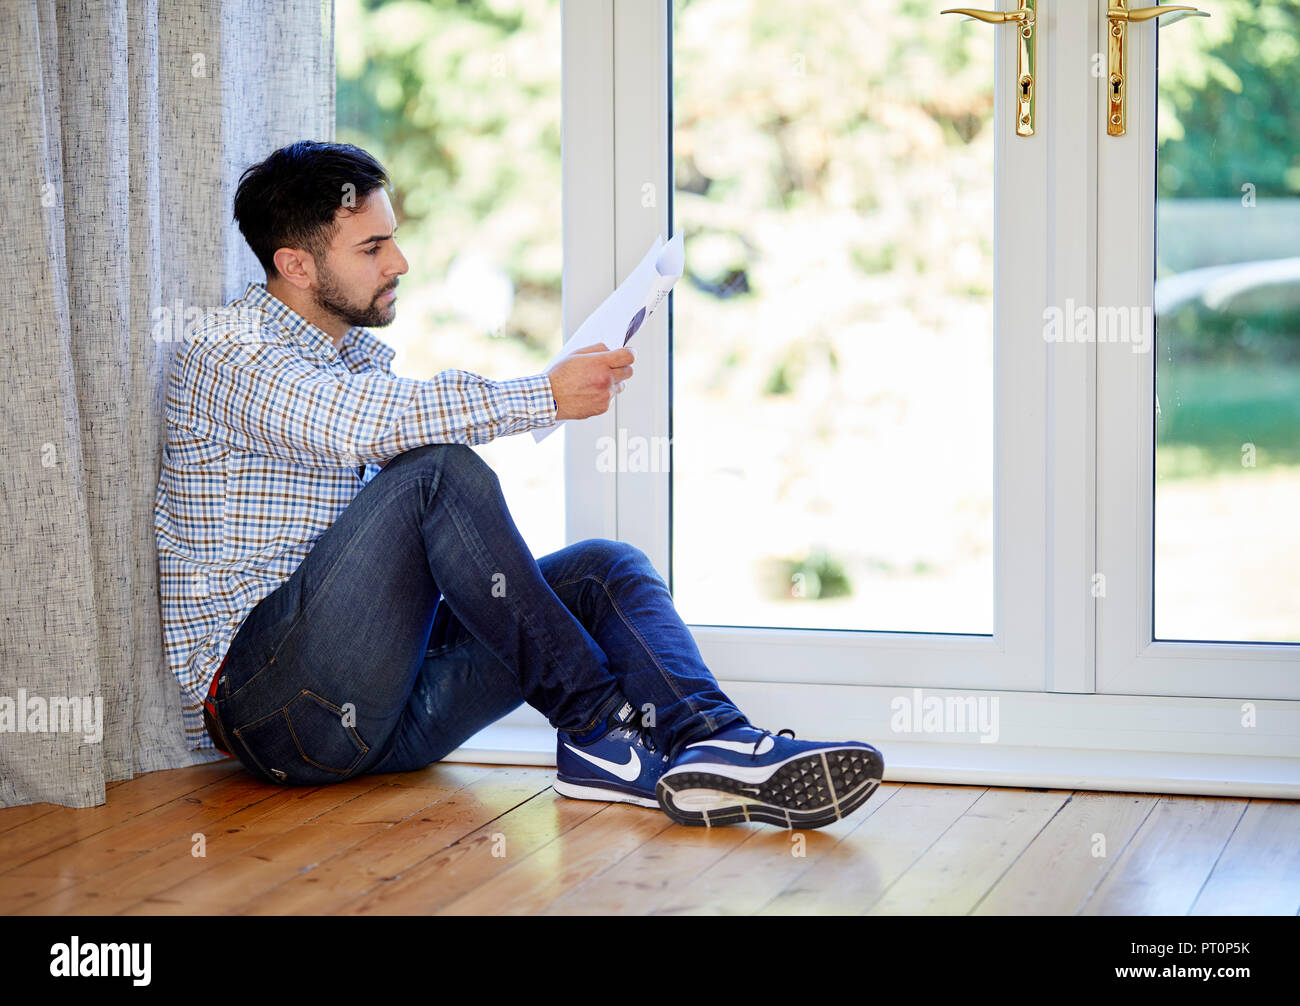 Man looking at his bank statement - Stock Image